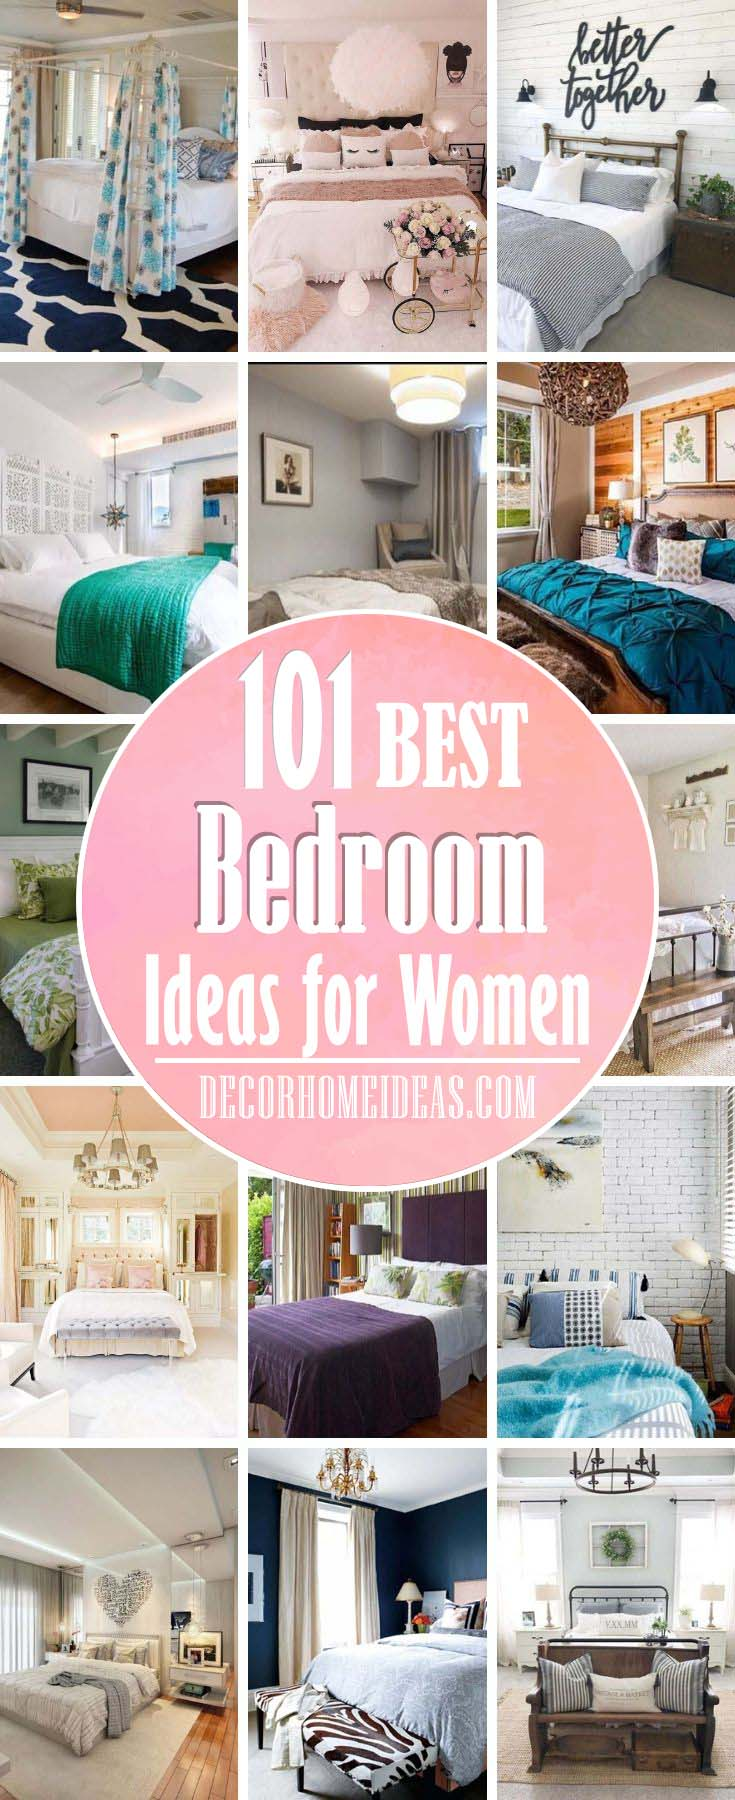 Best Bedroom Ideas For Women. The most beautiful bedroom ideas for women are those with a feminine touch and strong and bold enough statements that speak for one's character and individuality. #bedroom #woman #feminine #women #decor #decorhomeideas